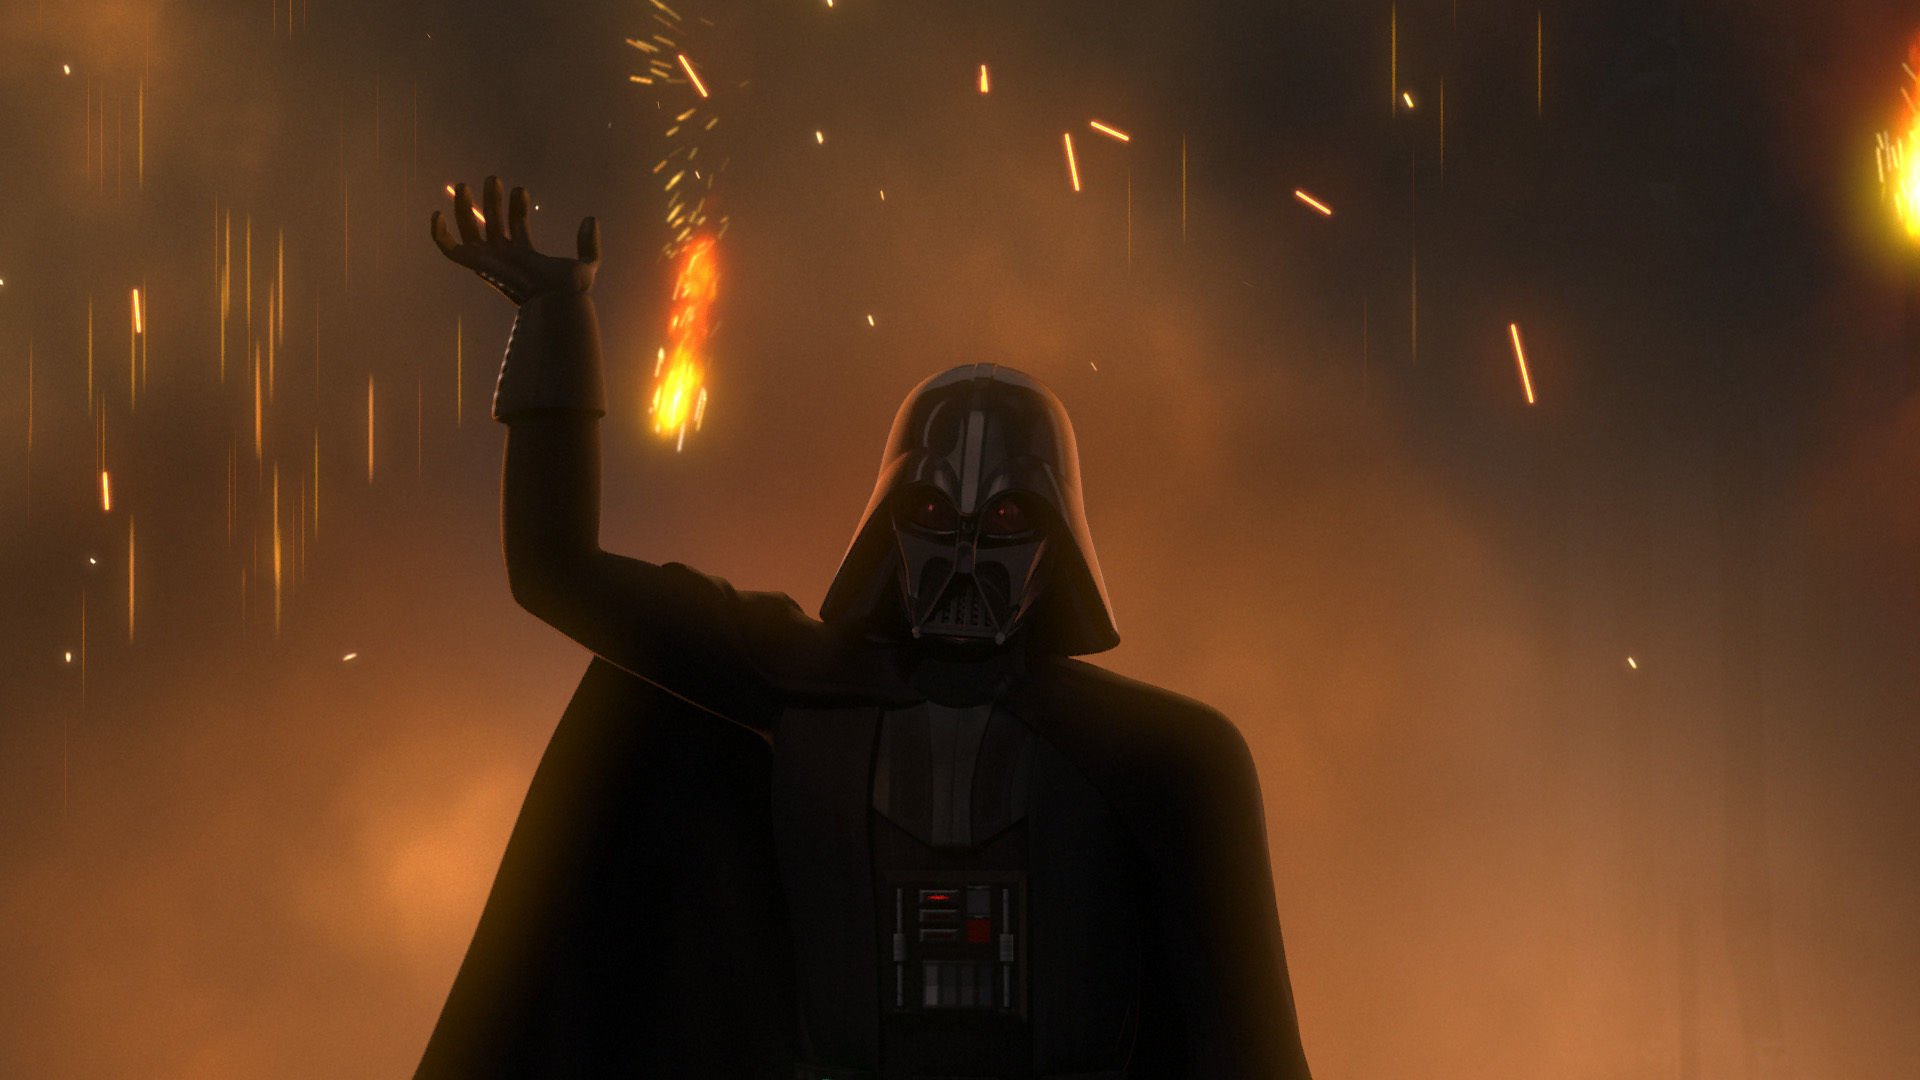 Series de Televisión - Star Wars Rebels  Darth Vader Fondo de Pantalla